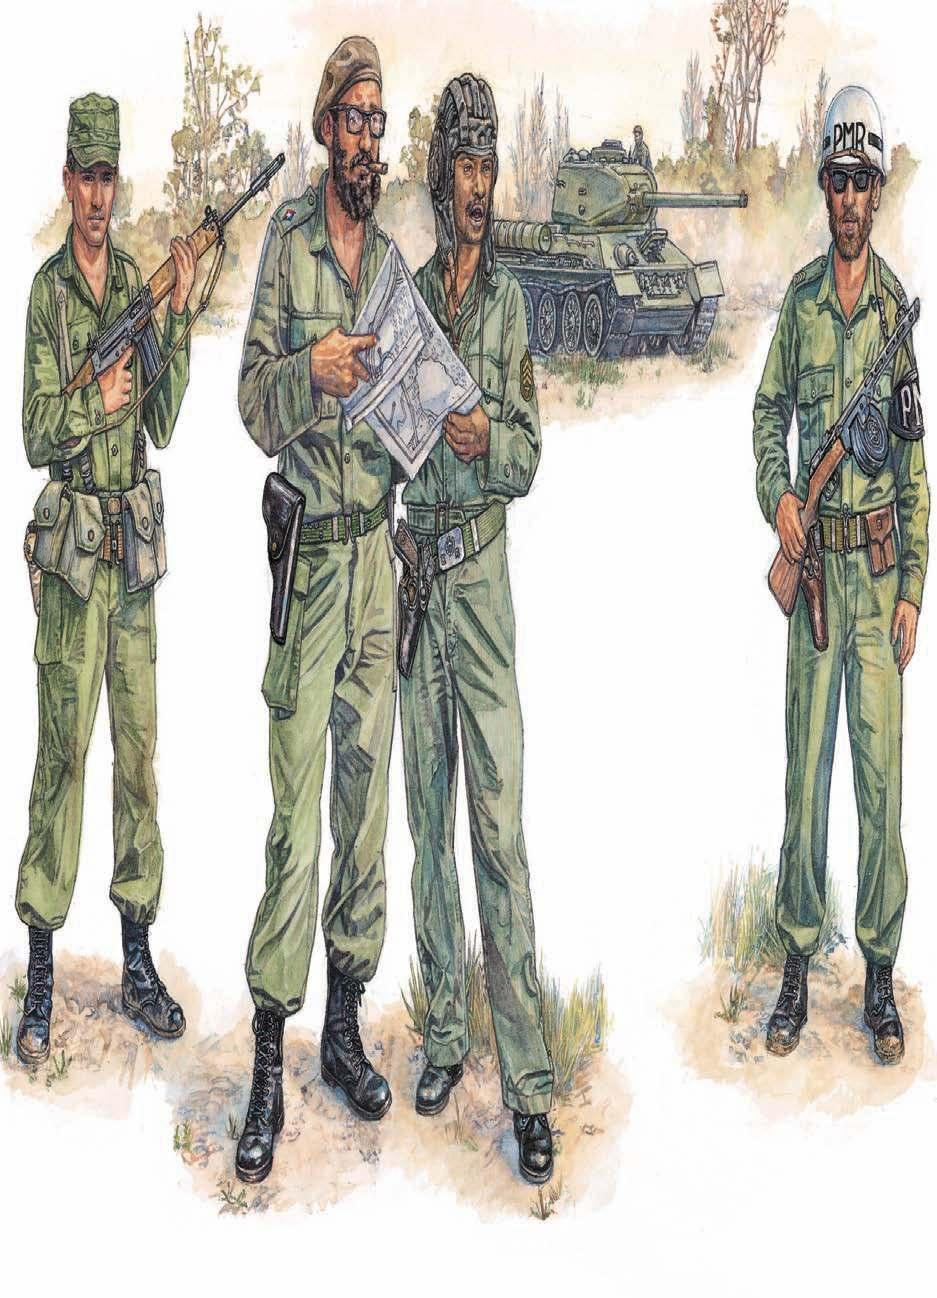 1 2 3 4 CUBAN REVOLUTIONARY ARMED FORCES 1: Infantry private 2: Comandante